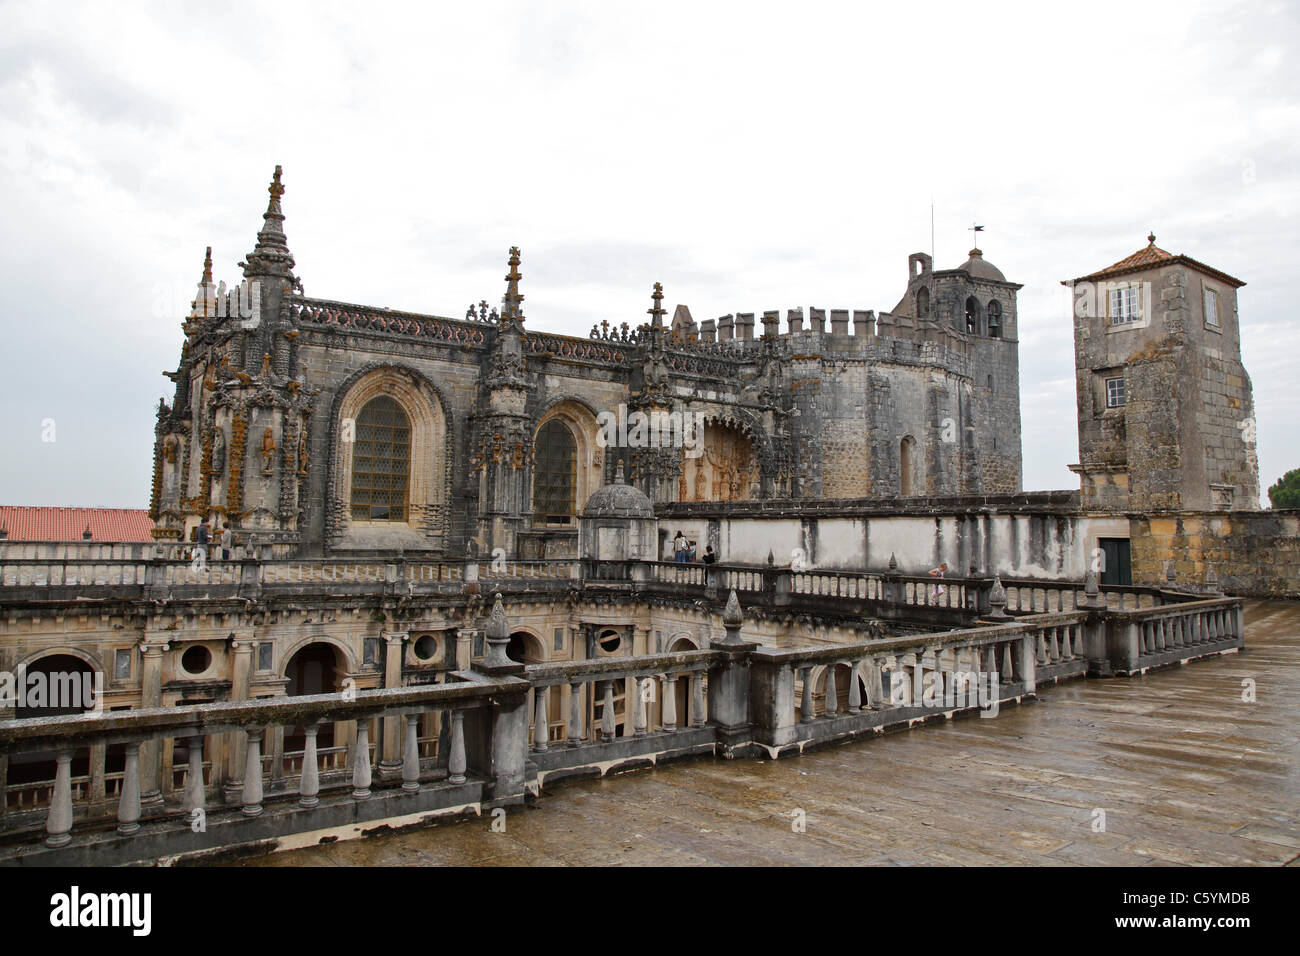 A view of the church of The Convent of the Order of Christ (Convento de Cristo) from above the Renaissance Cloister - Stock Image